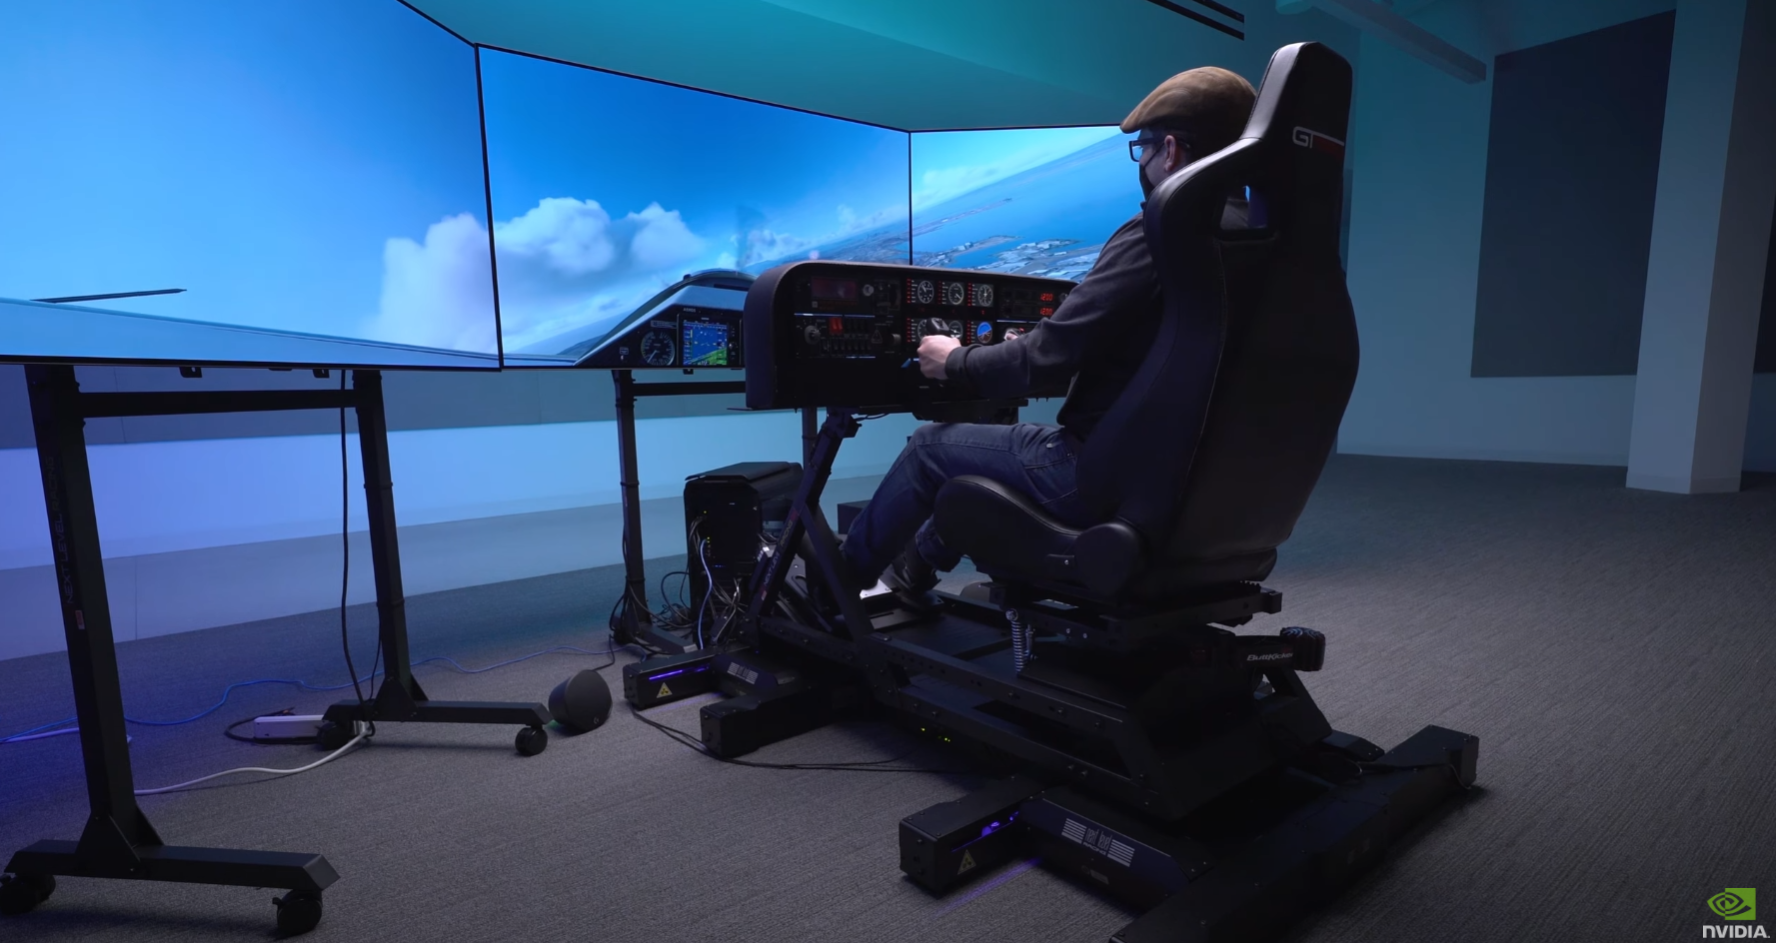 This $20,000 Microsoft Flight Simulator rig is more expensive than some real planes